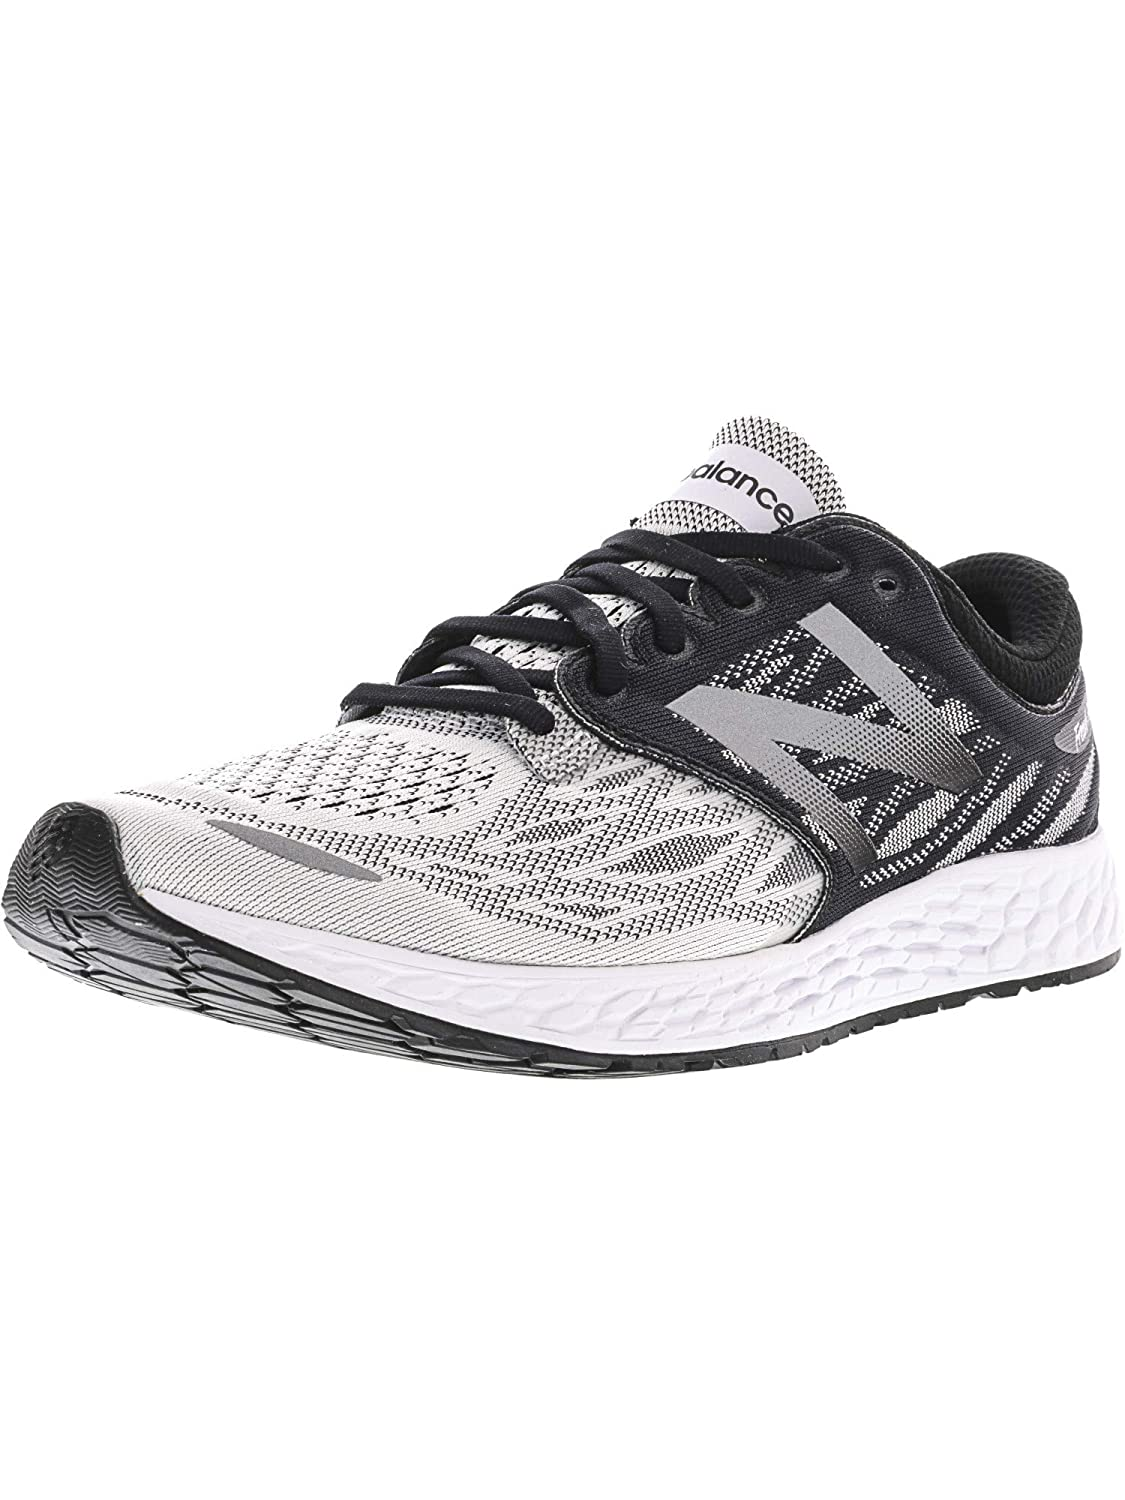 bd4362e65403c New Balance Mens MZANTWG3 Zantv3: Amazon.com.au: Fashion